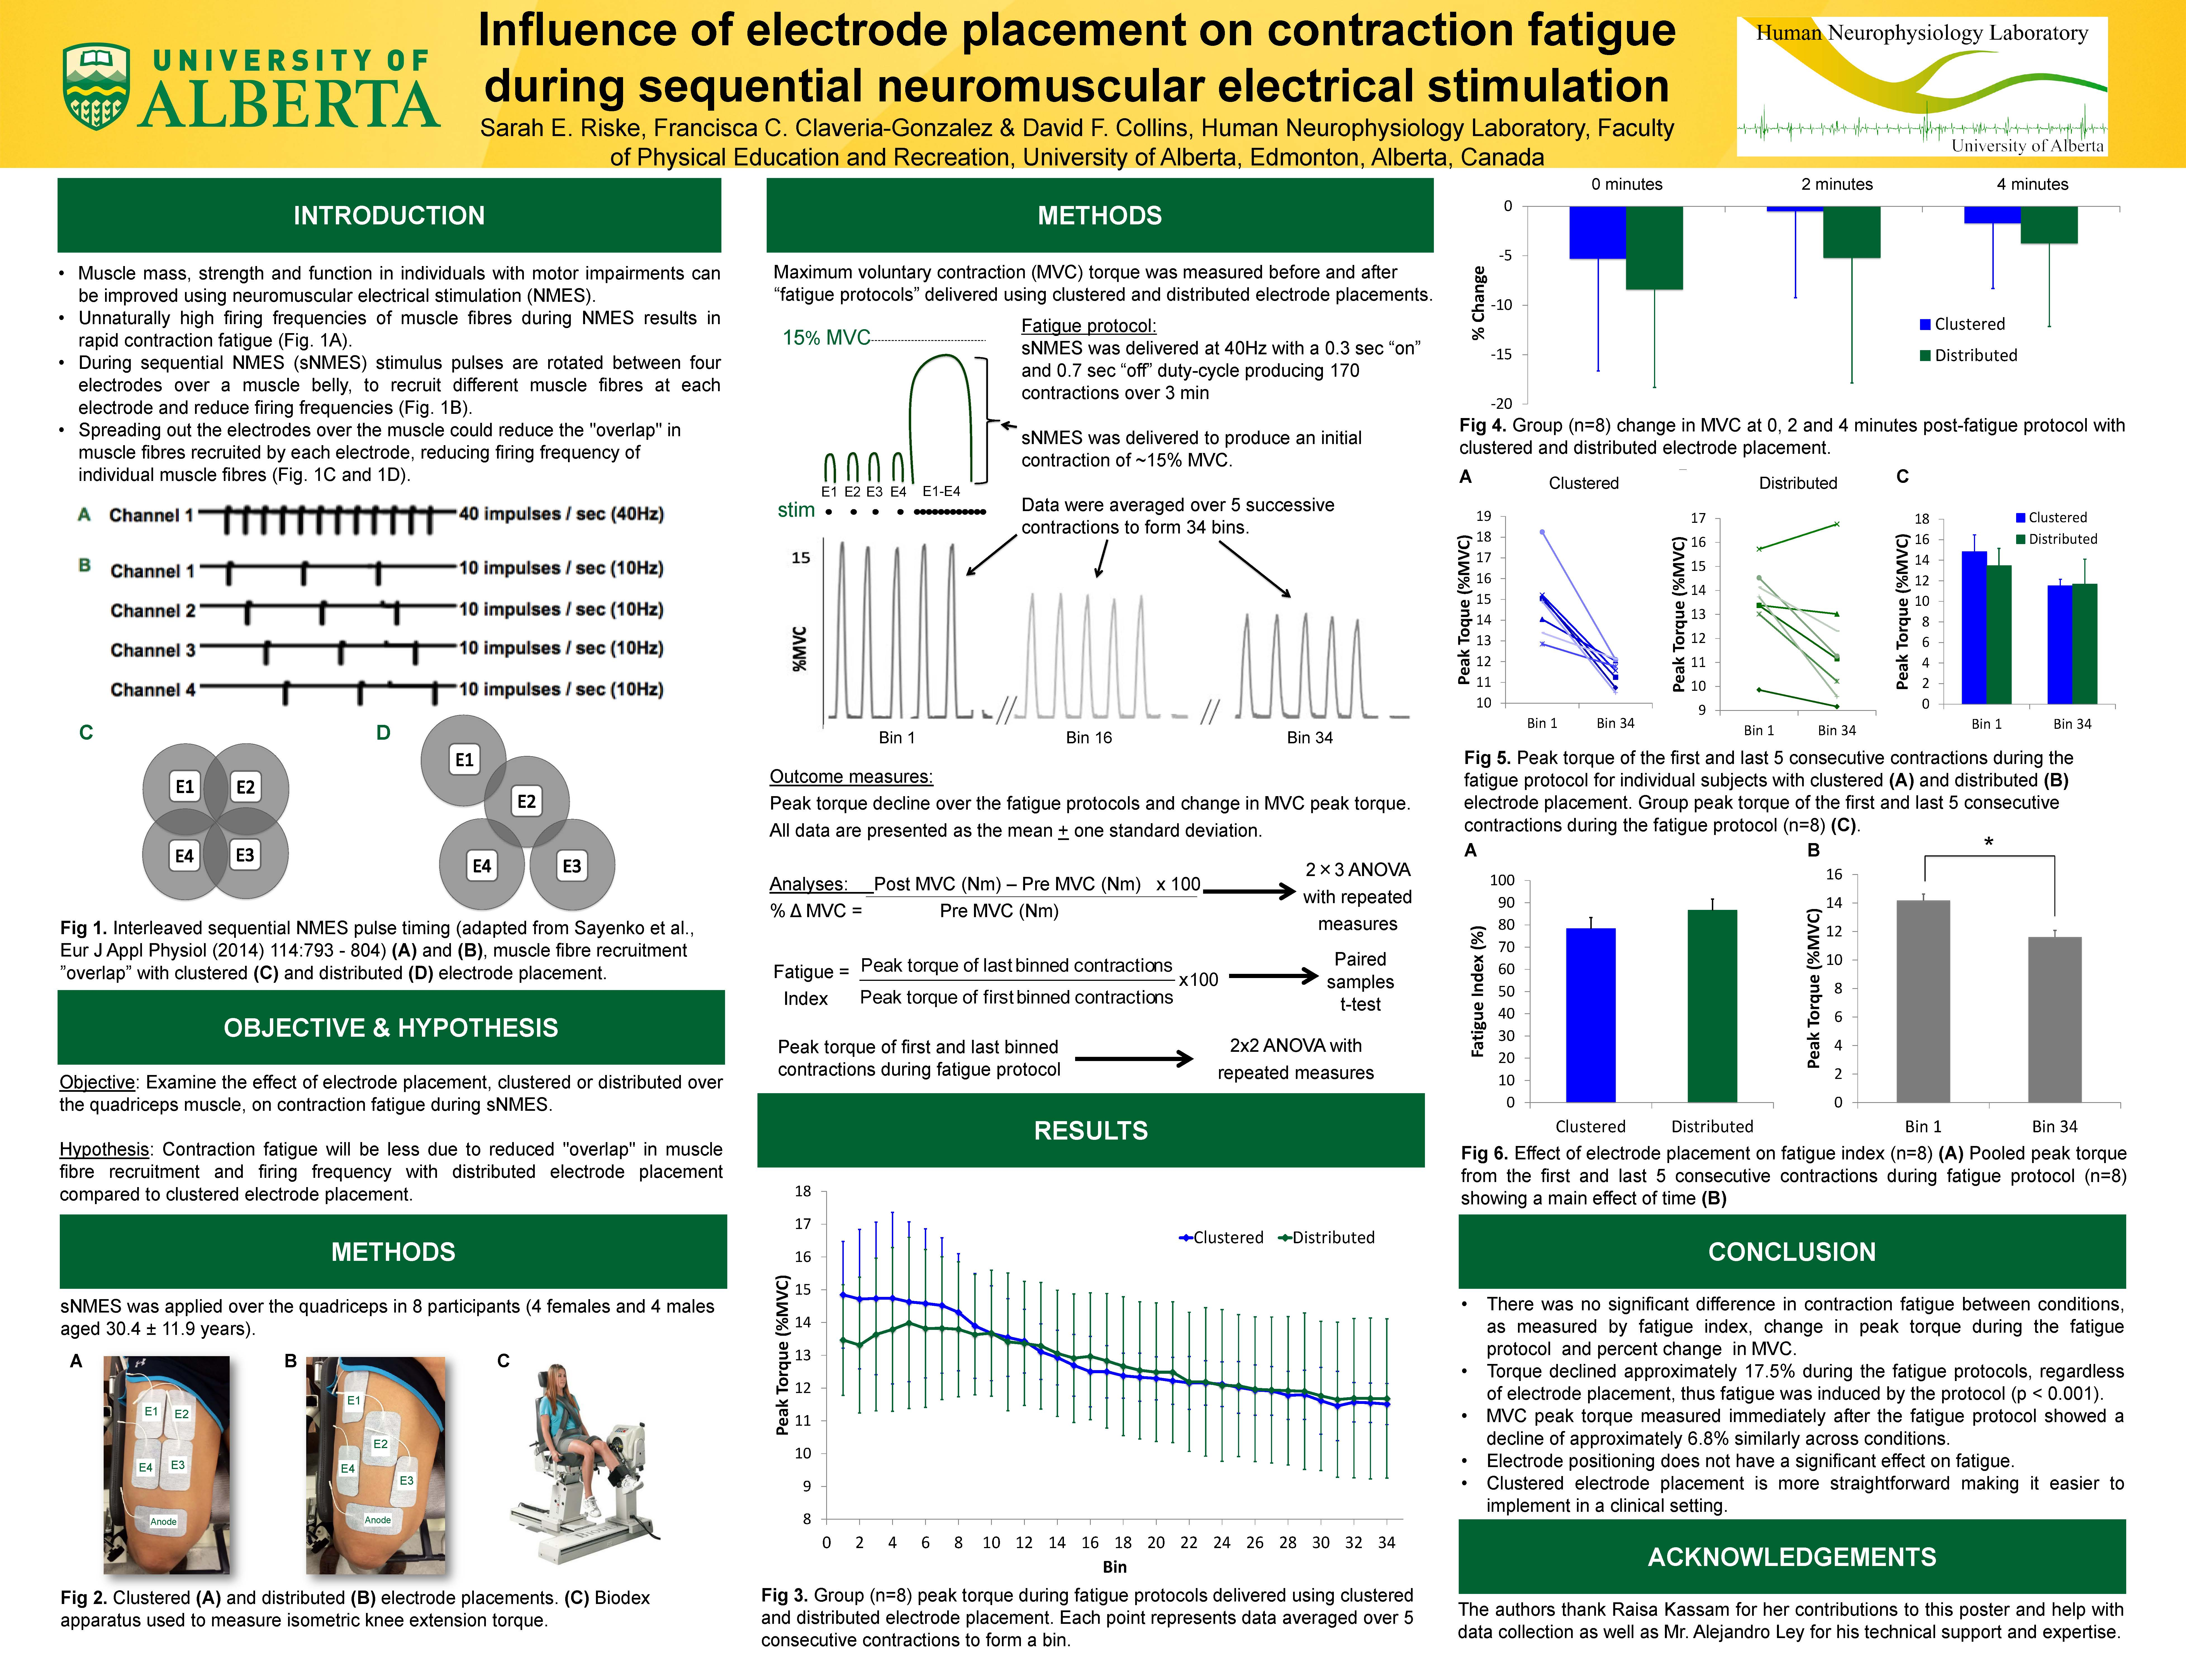 Sarah-Beth Riske Research Revealed Poster